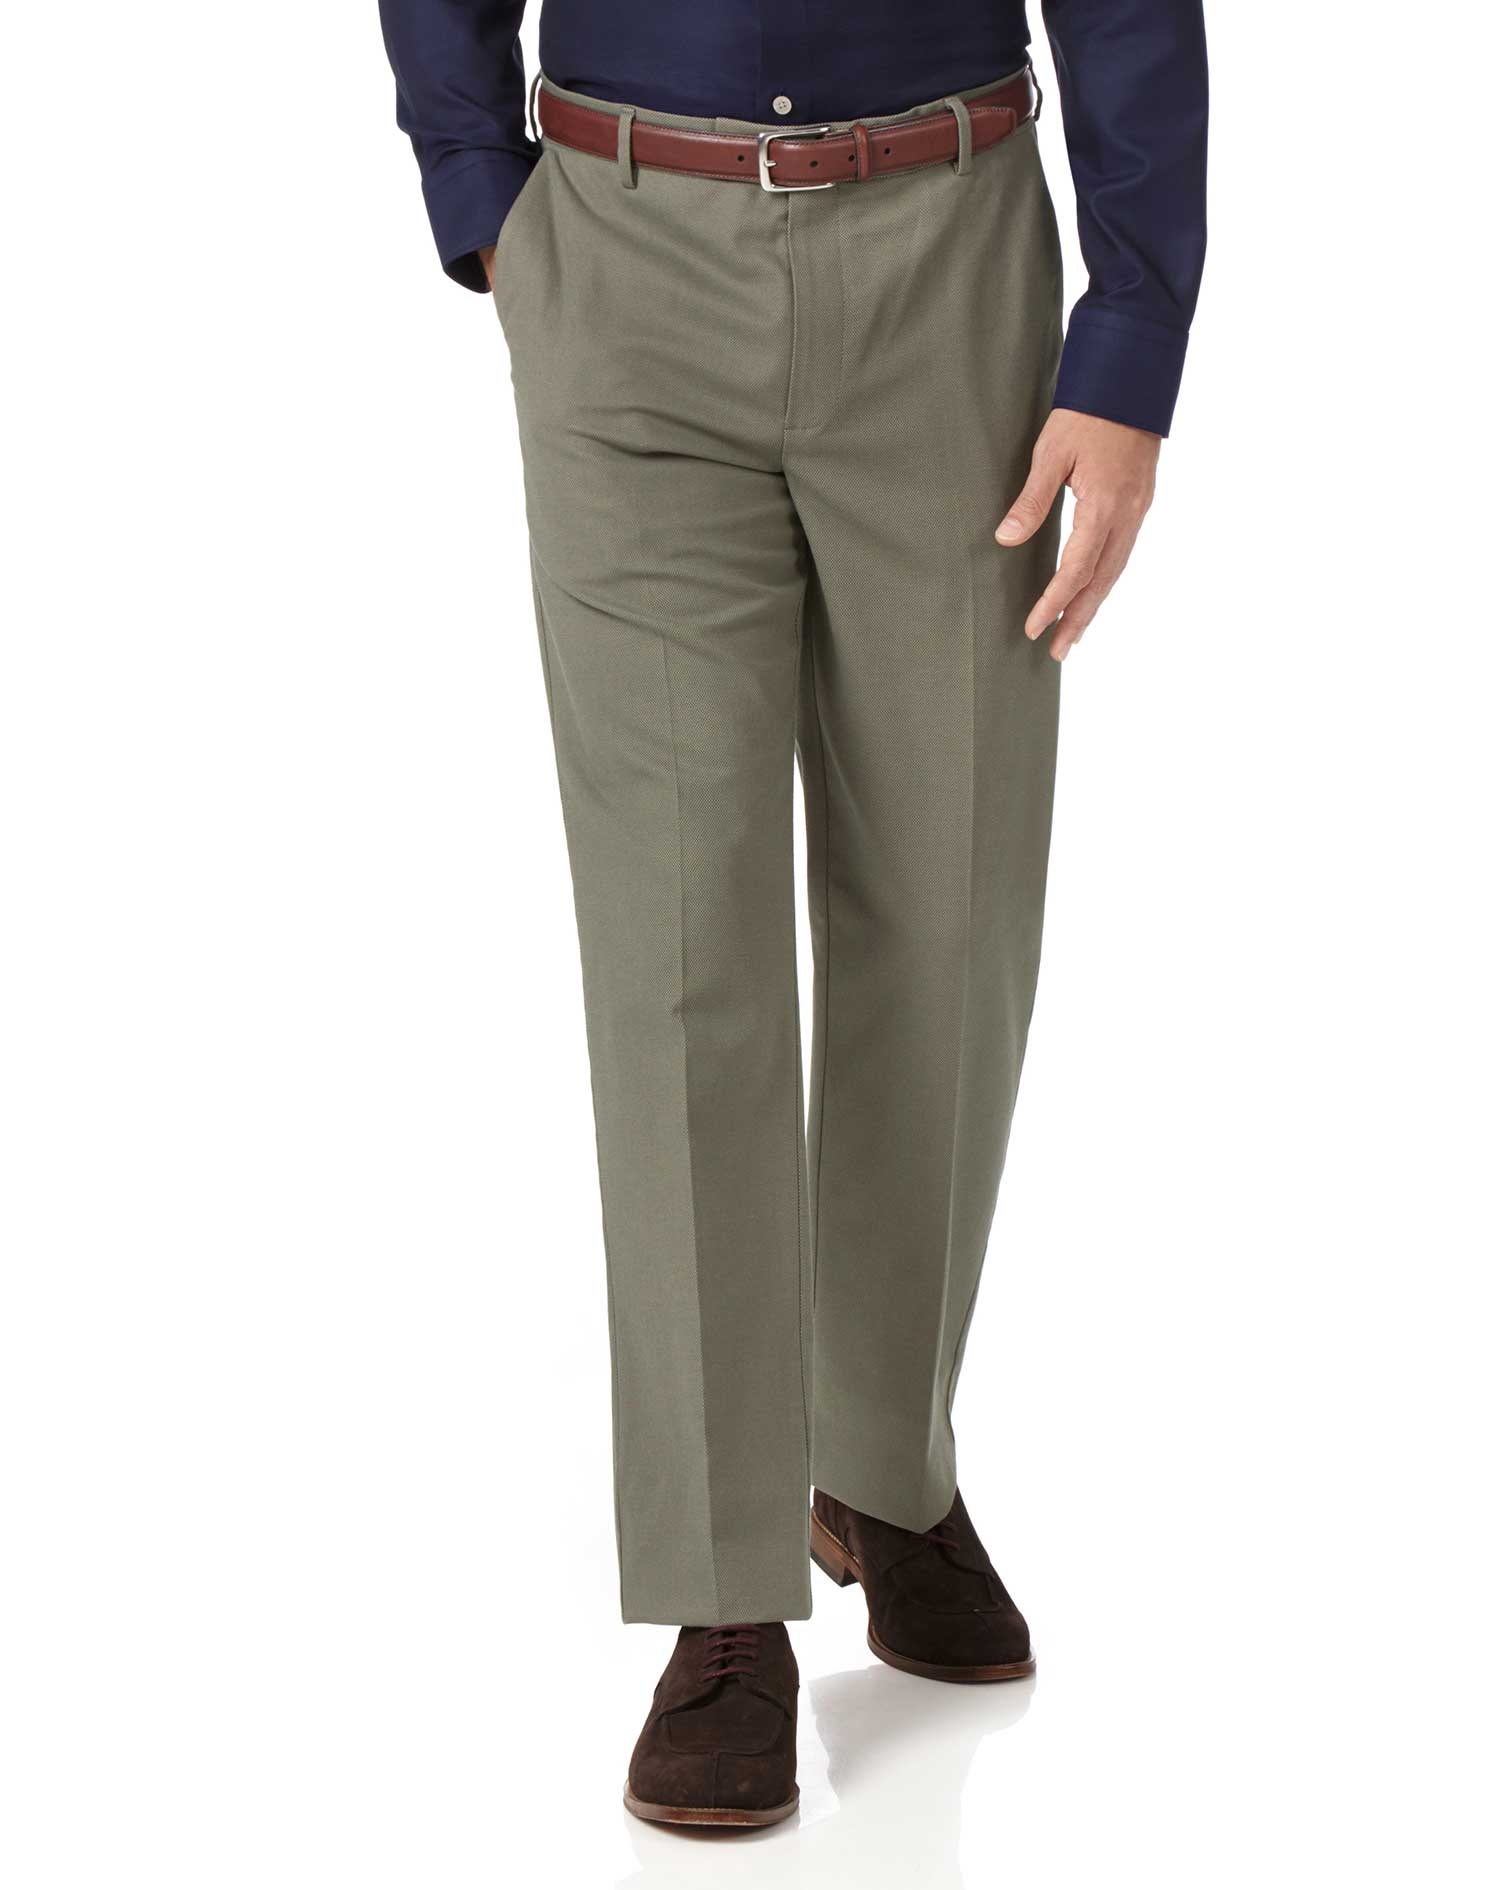 Olive Classic Fit Stretch Non-Iron Trousers Size W42 L30 by Charles Tyrwhitt